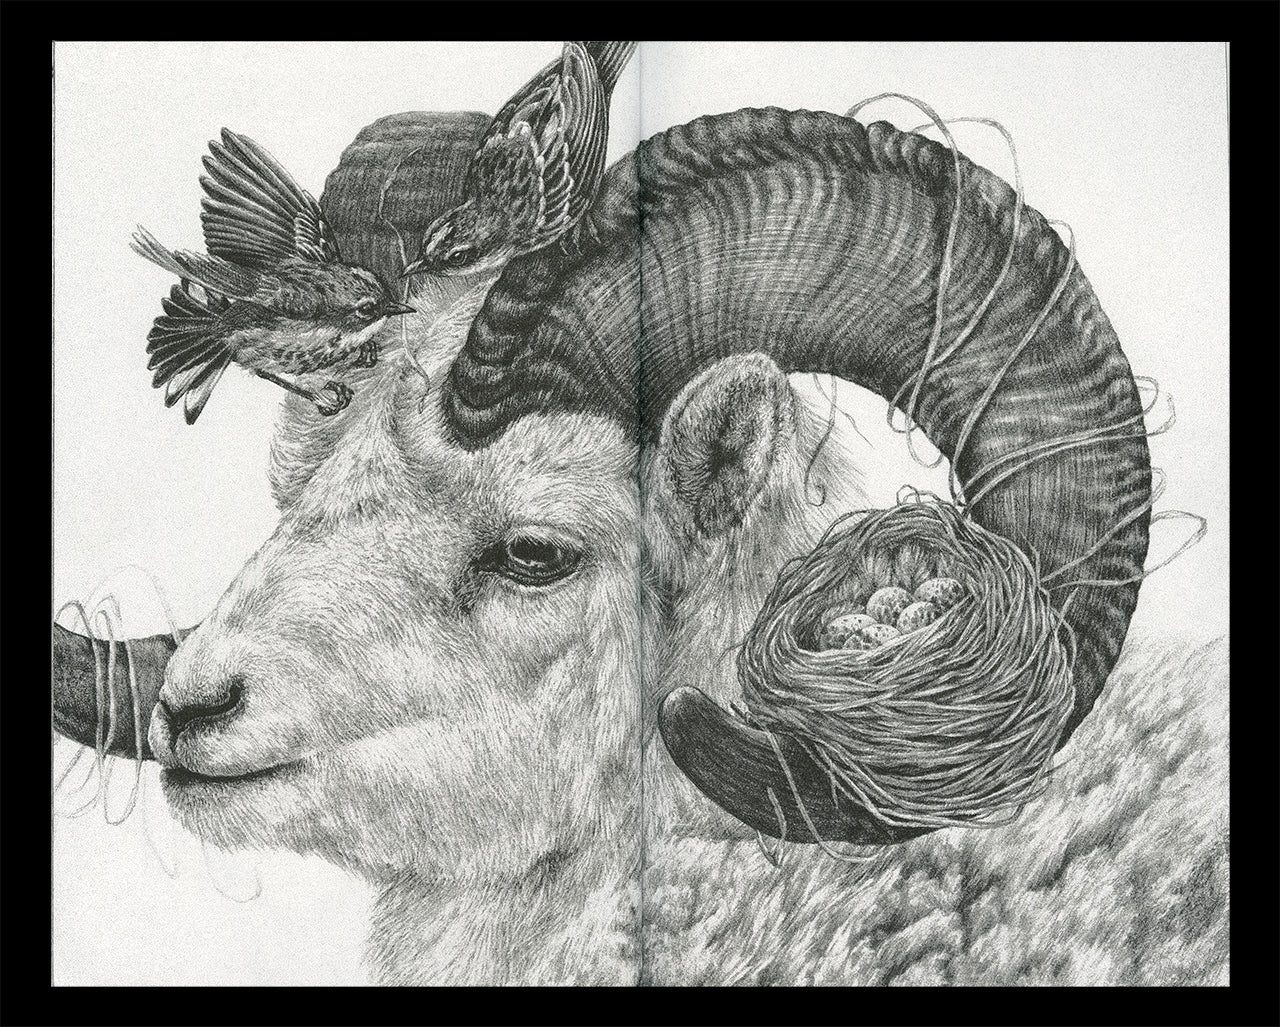 """Interior spread of Zoe Keller's zine """"Drawings"""" showing a graphite drawing of a ram"""